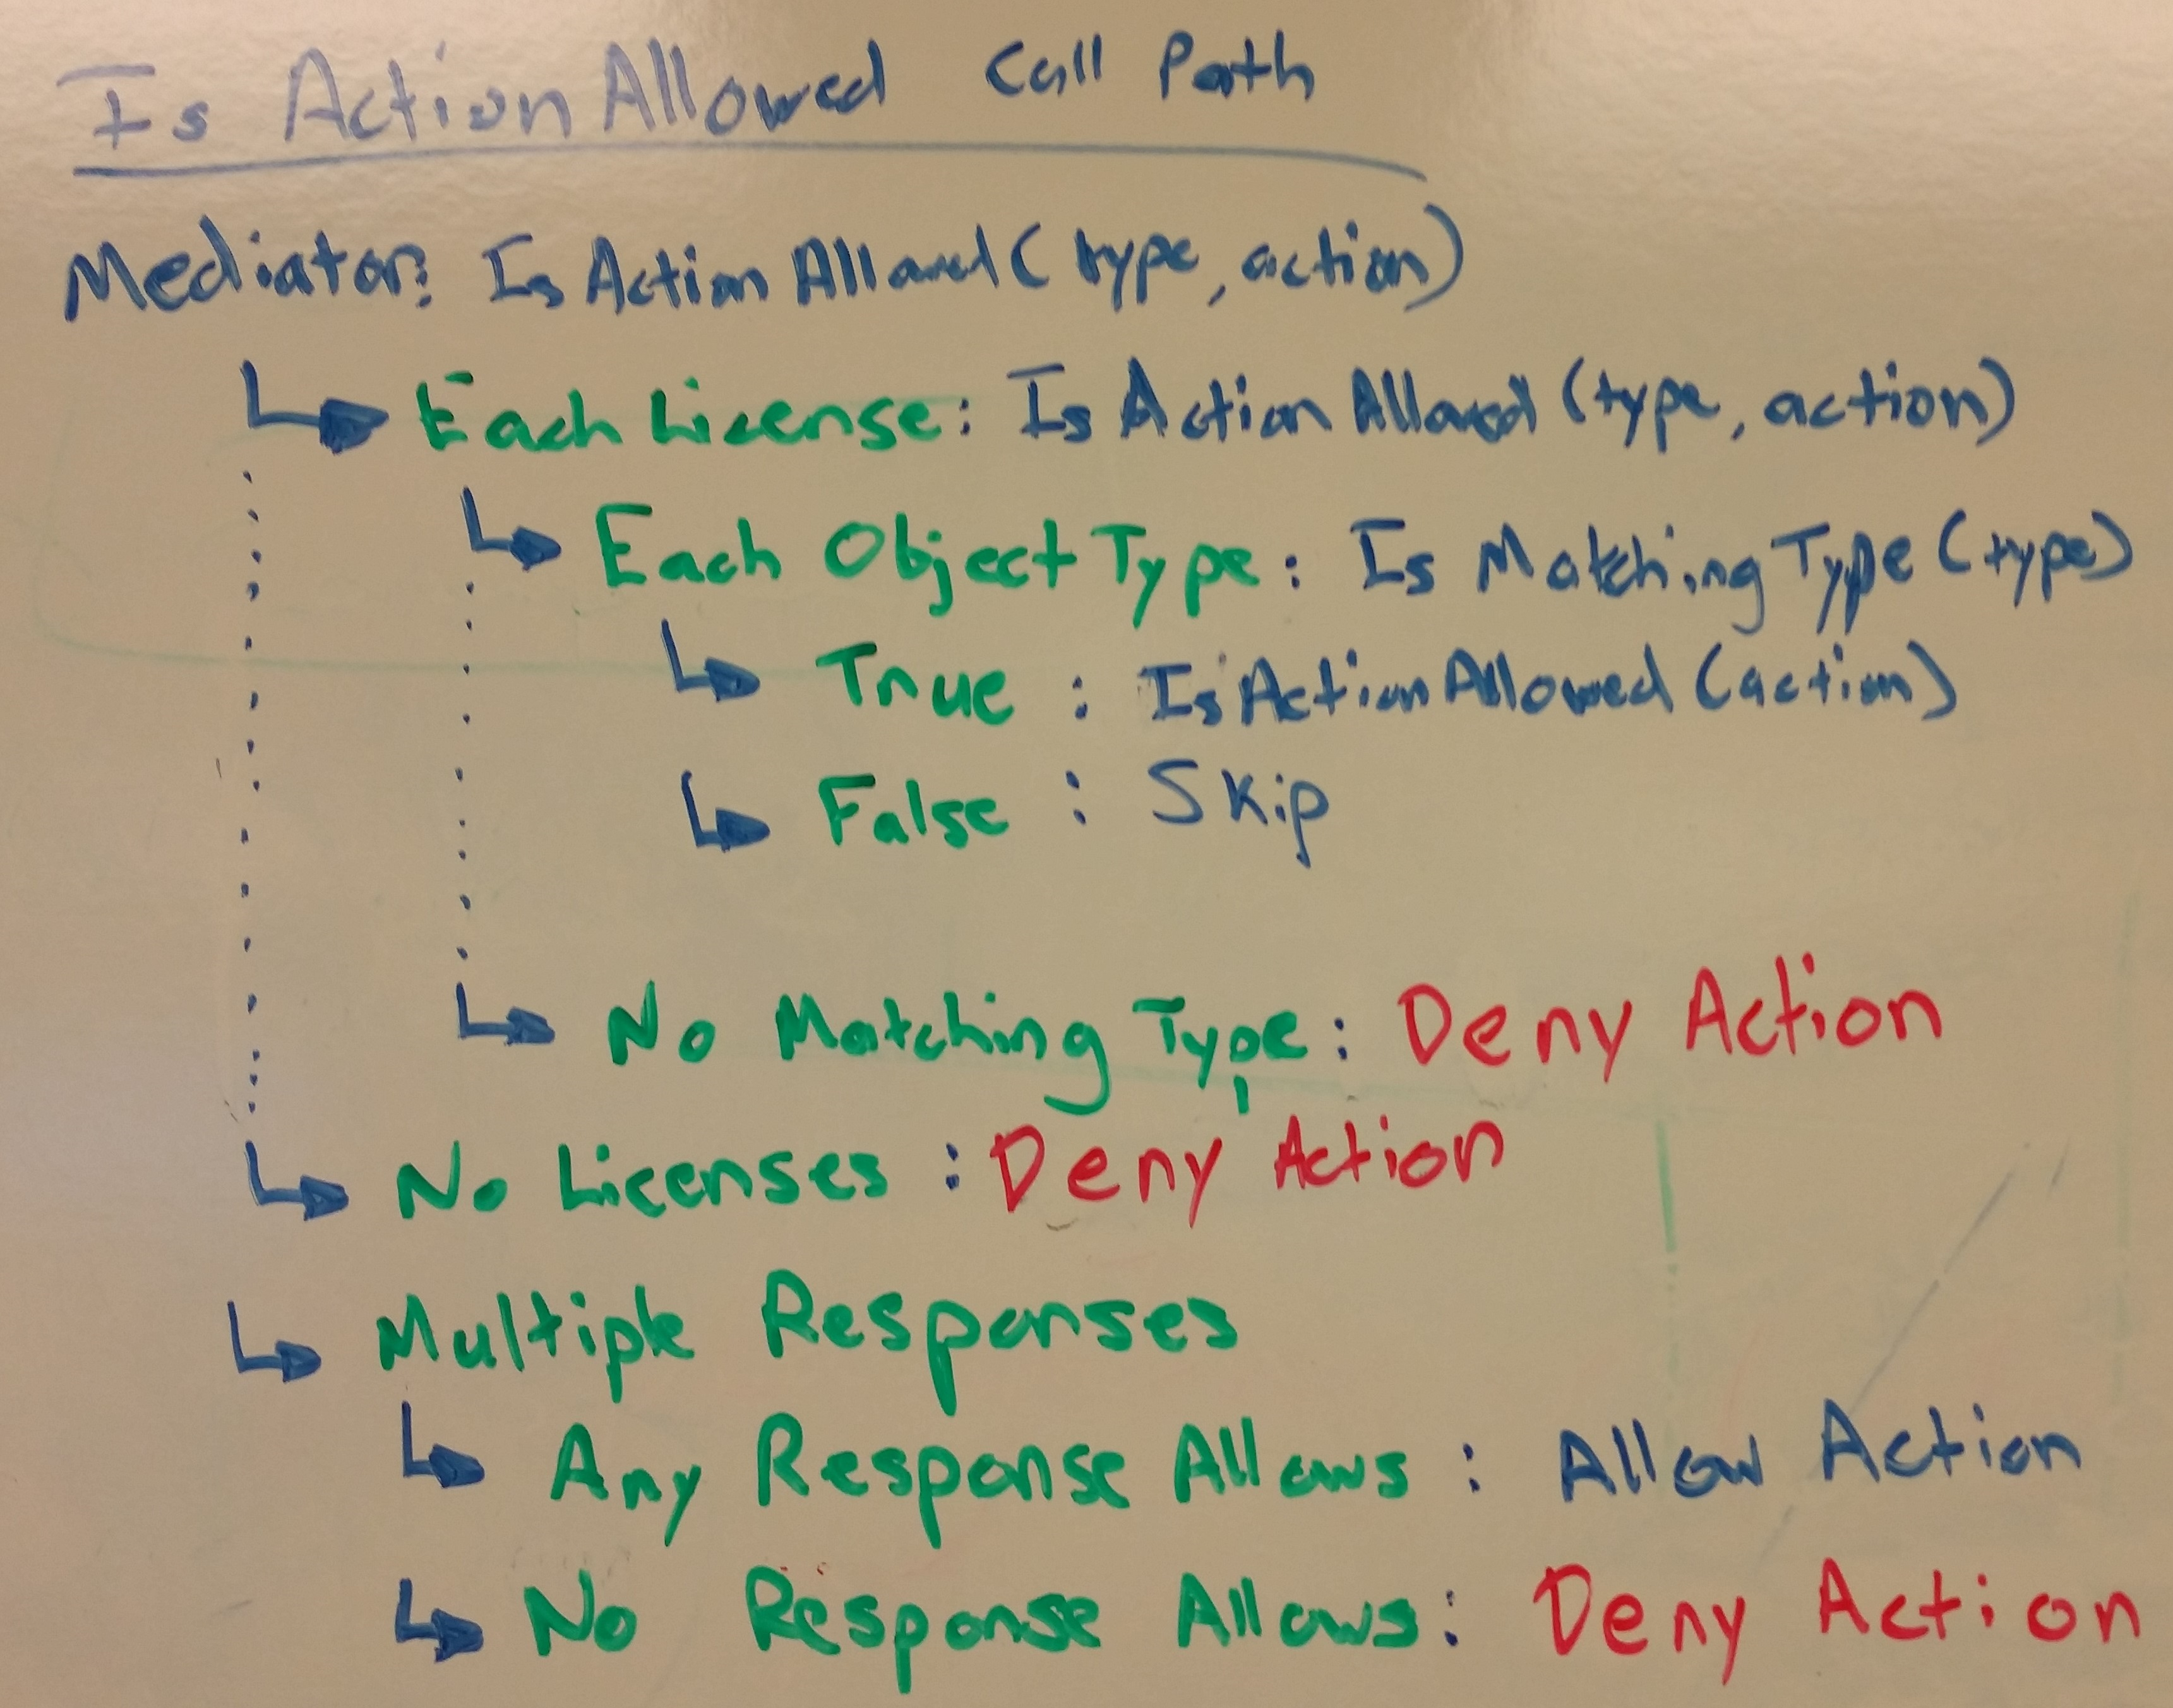 Function of IsActionAllowed mapped out on Whiteboard